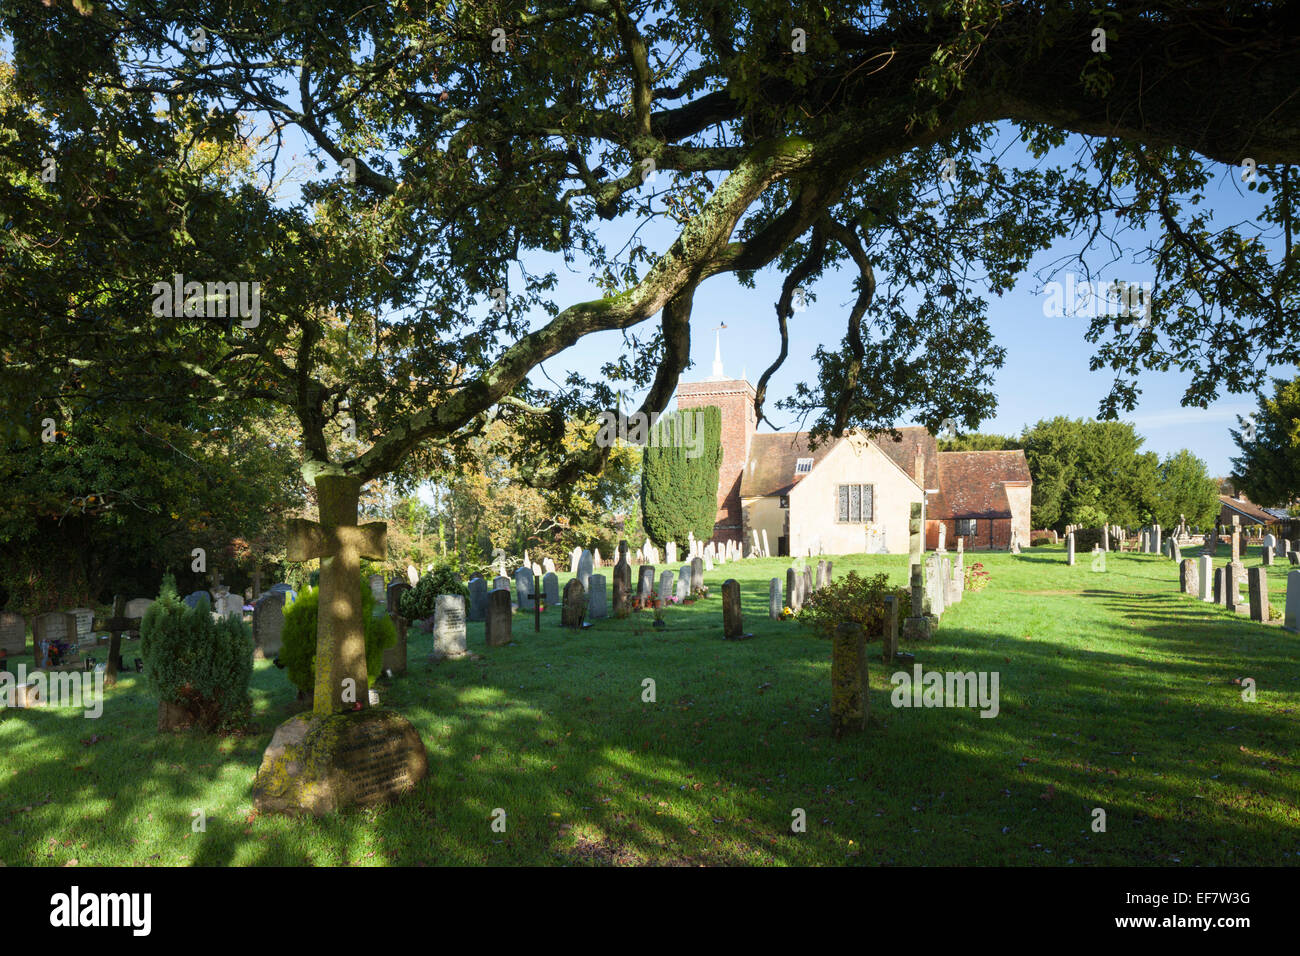 The gravestone of Sir Arthur Conan Doyle within the churchyard of All Saints church, Minstead, New Forest, Hampshire, - Stock Image